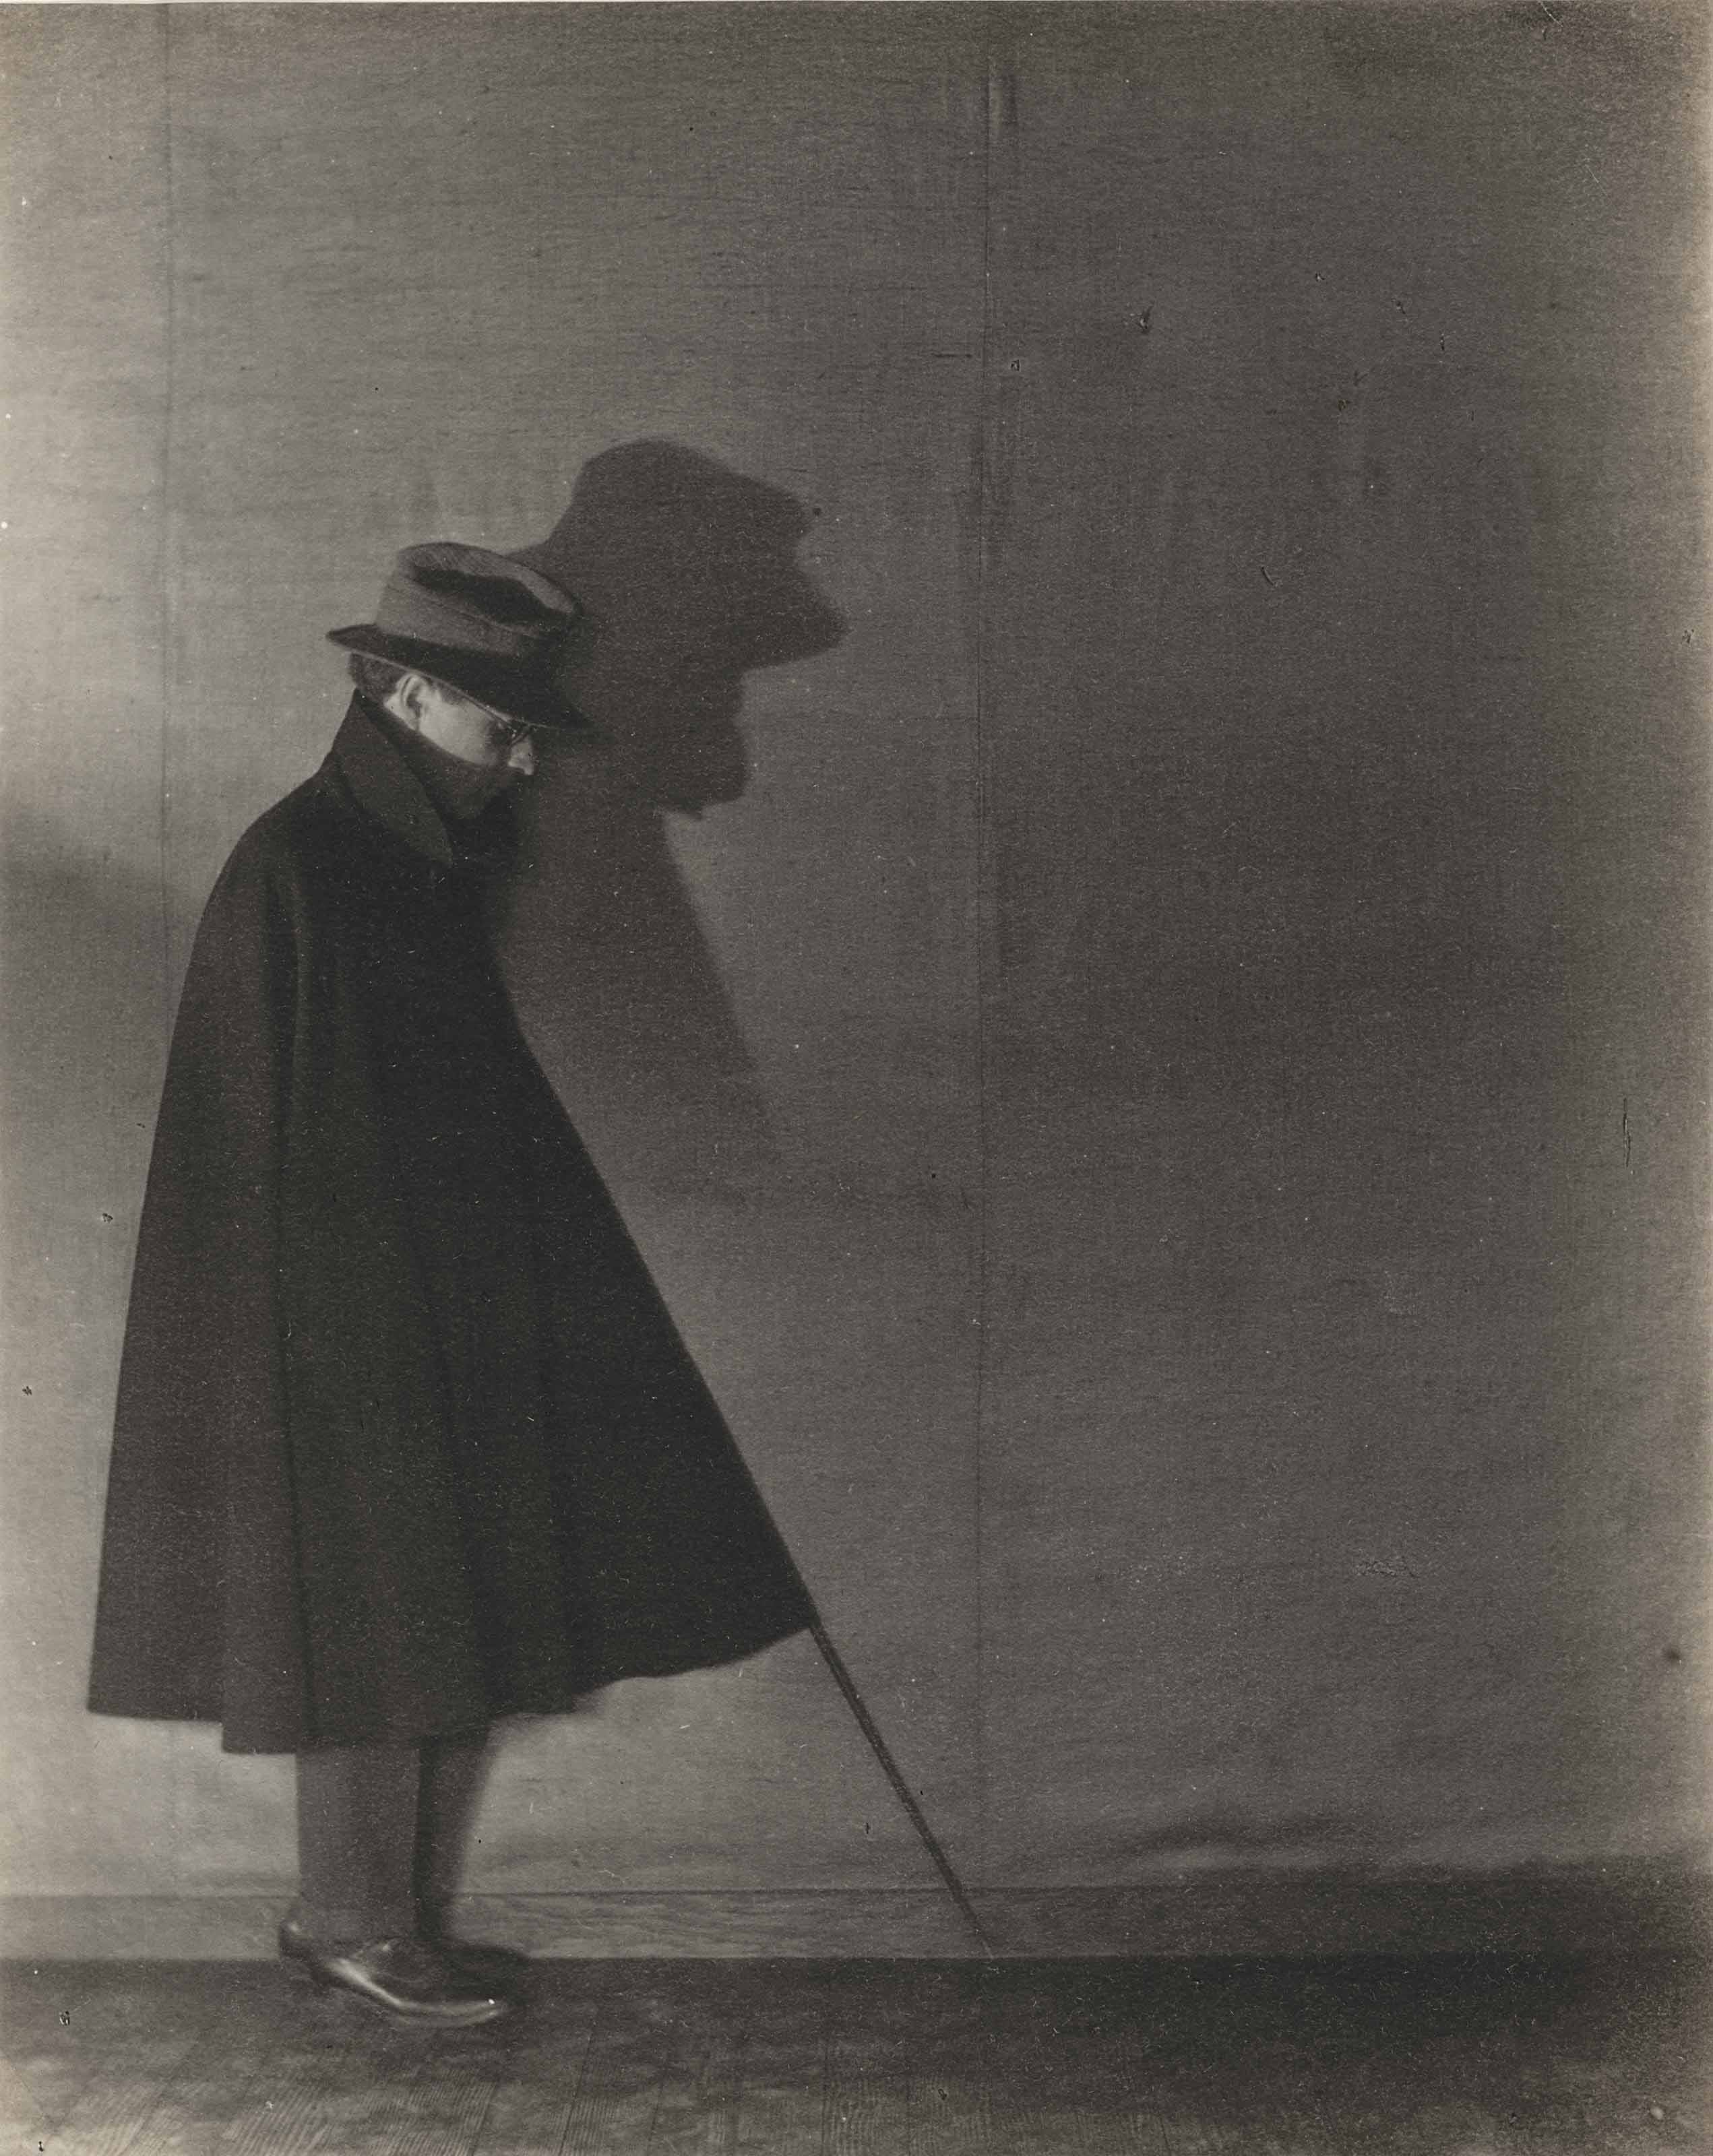 Edward Weston in Shadow, c. 1919-1920